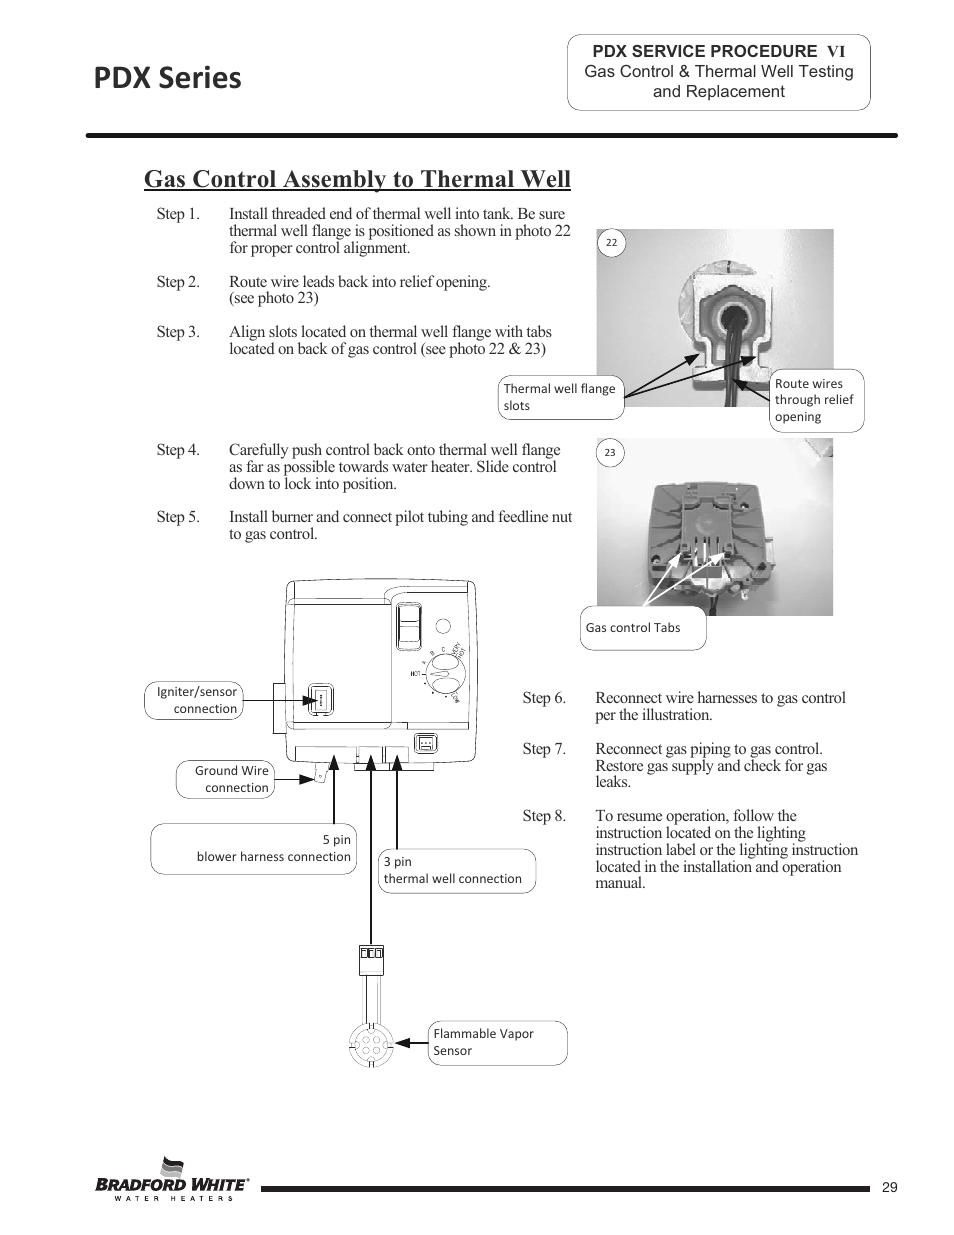 medium resolution of pdx series gas control assembly to thermal well bradford white pdx 75s 70fb 3x user manual page 29 44